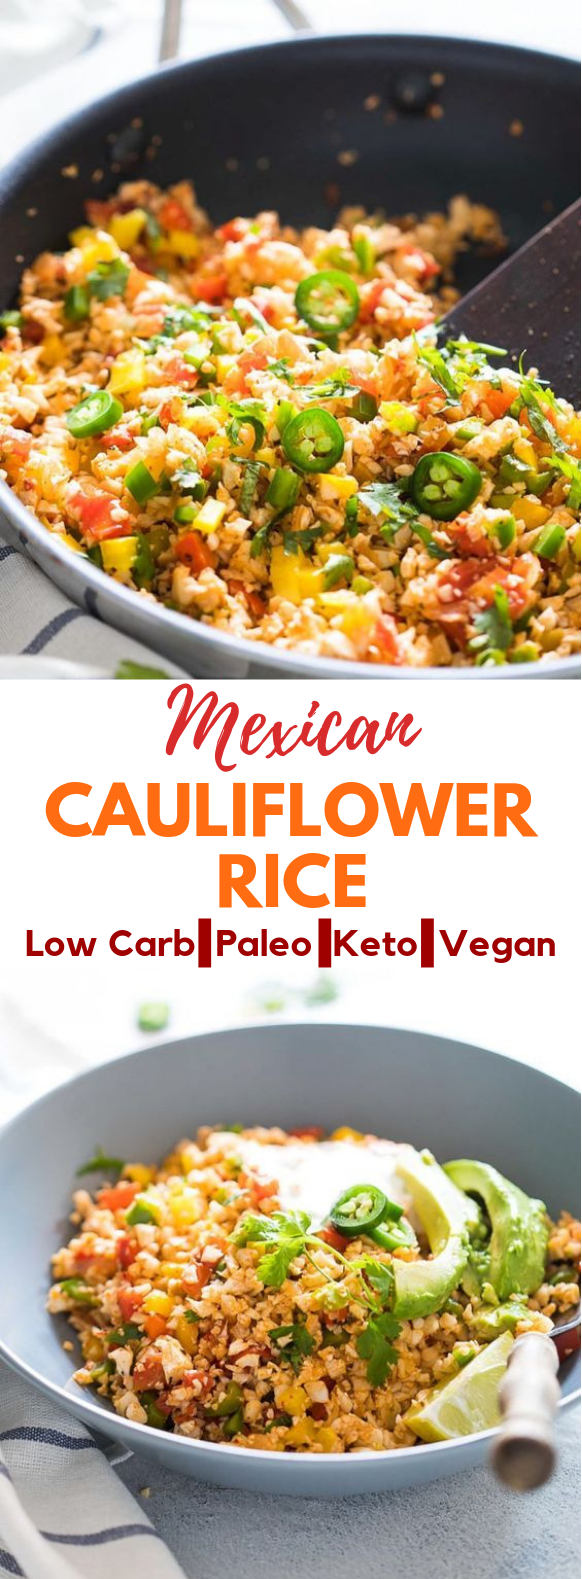 low carb mexican cauliflower rice (paleo, vegan, keto) #Keto #LowCarb